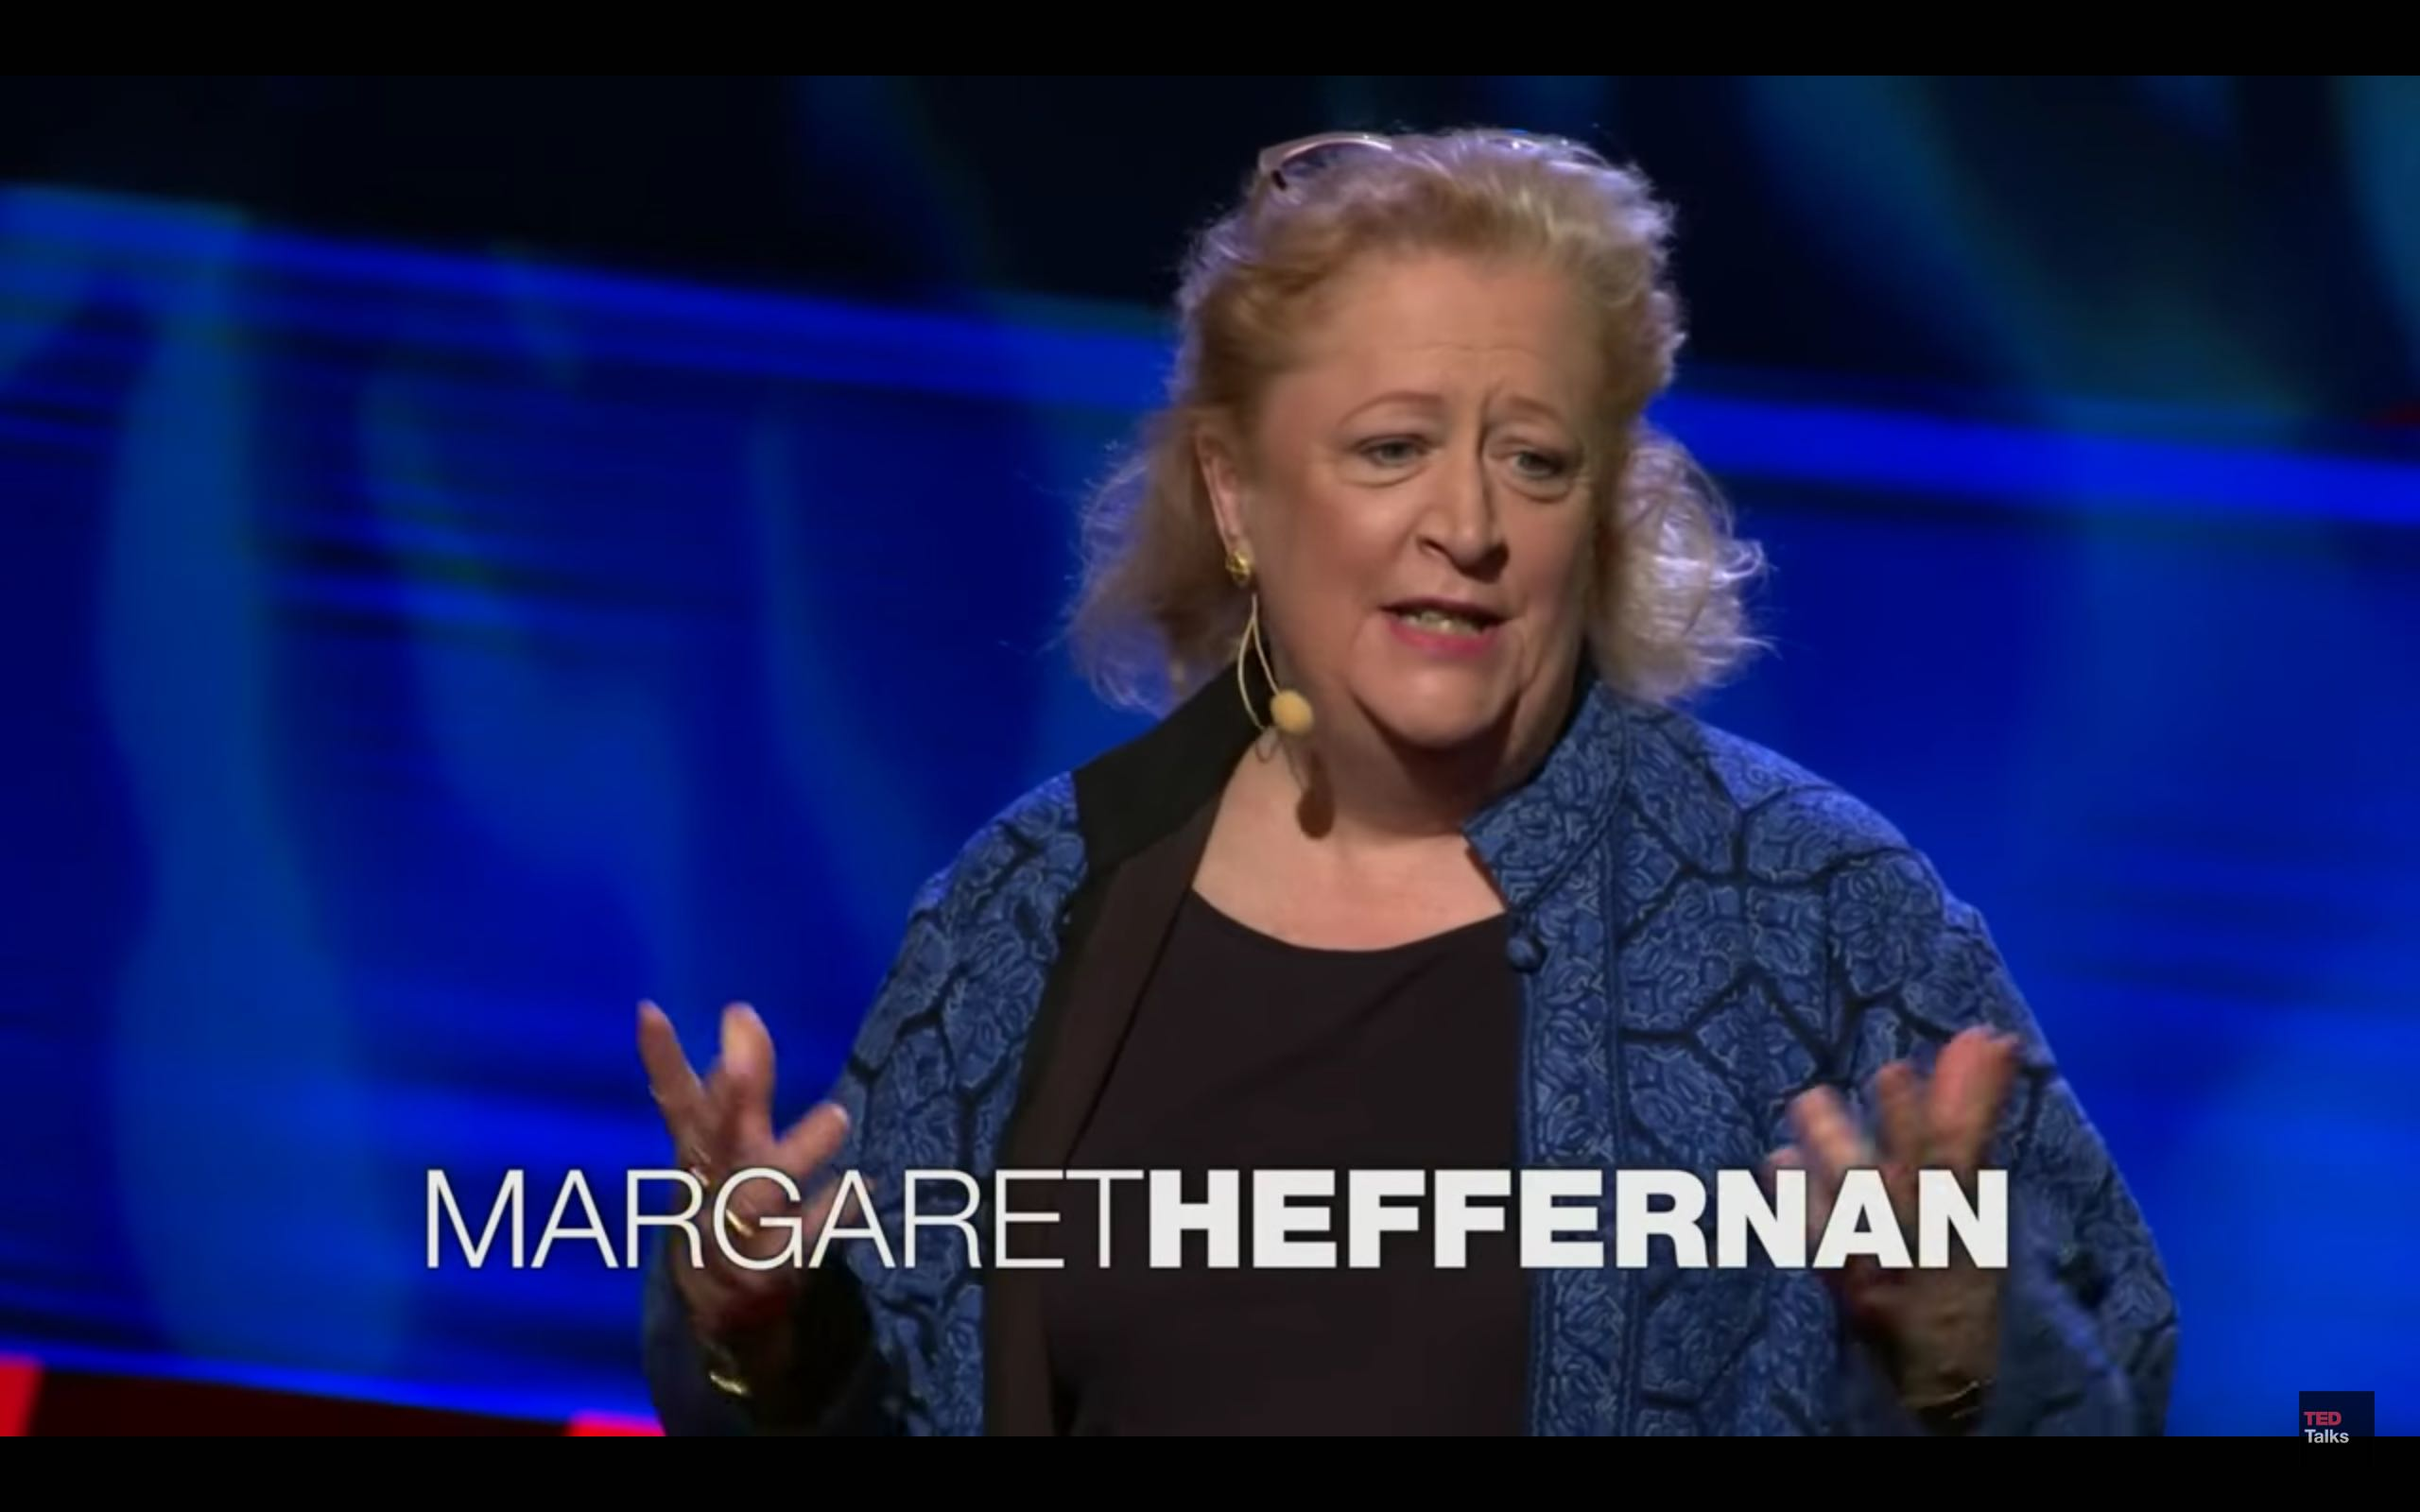 Margaret-Heffernan-Social-Capital.jpg